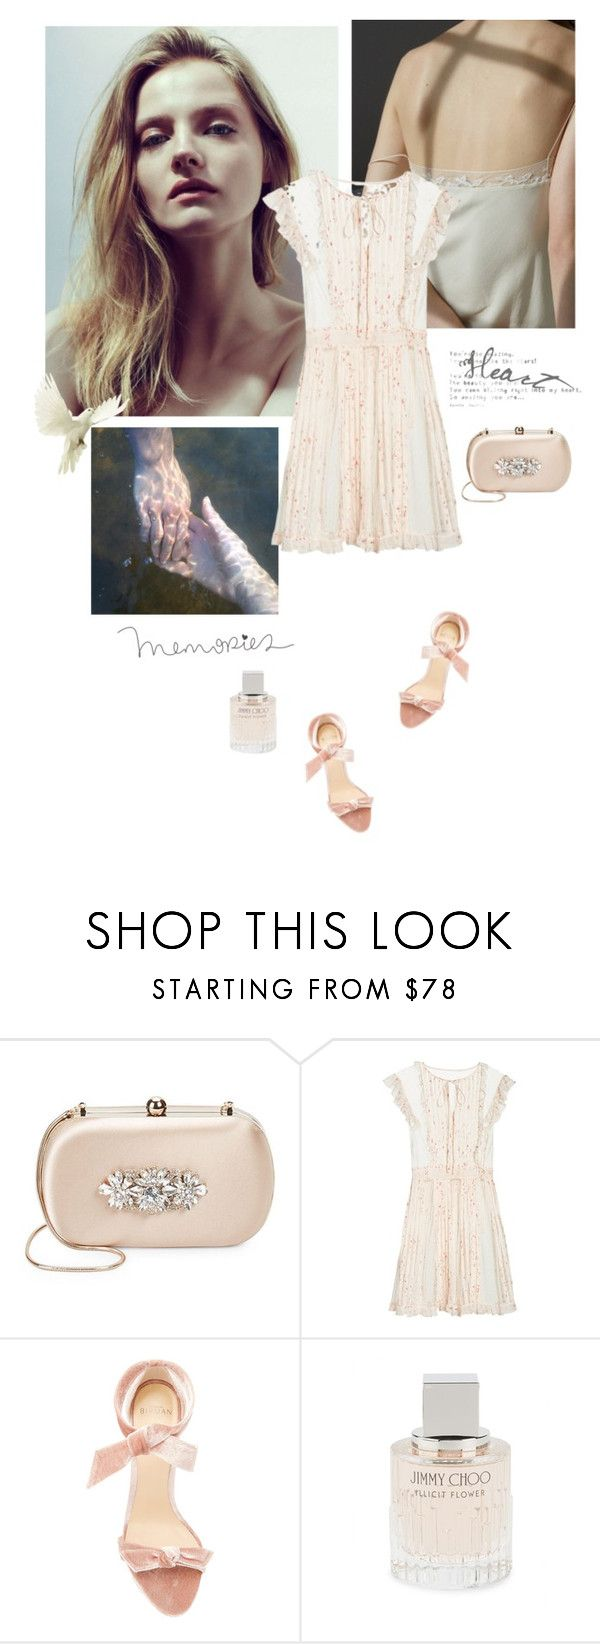 """Take My Hand And I Will Catch You"" by nicolesynth ❤ liked on Polyvore featuring Badgley Mischka, GET LOST, RED Valentino, Alexandre Birman, Jimmy Choo and soft"